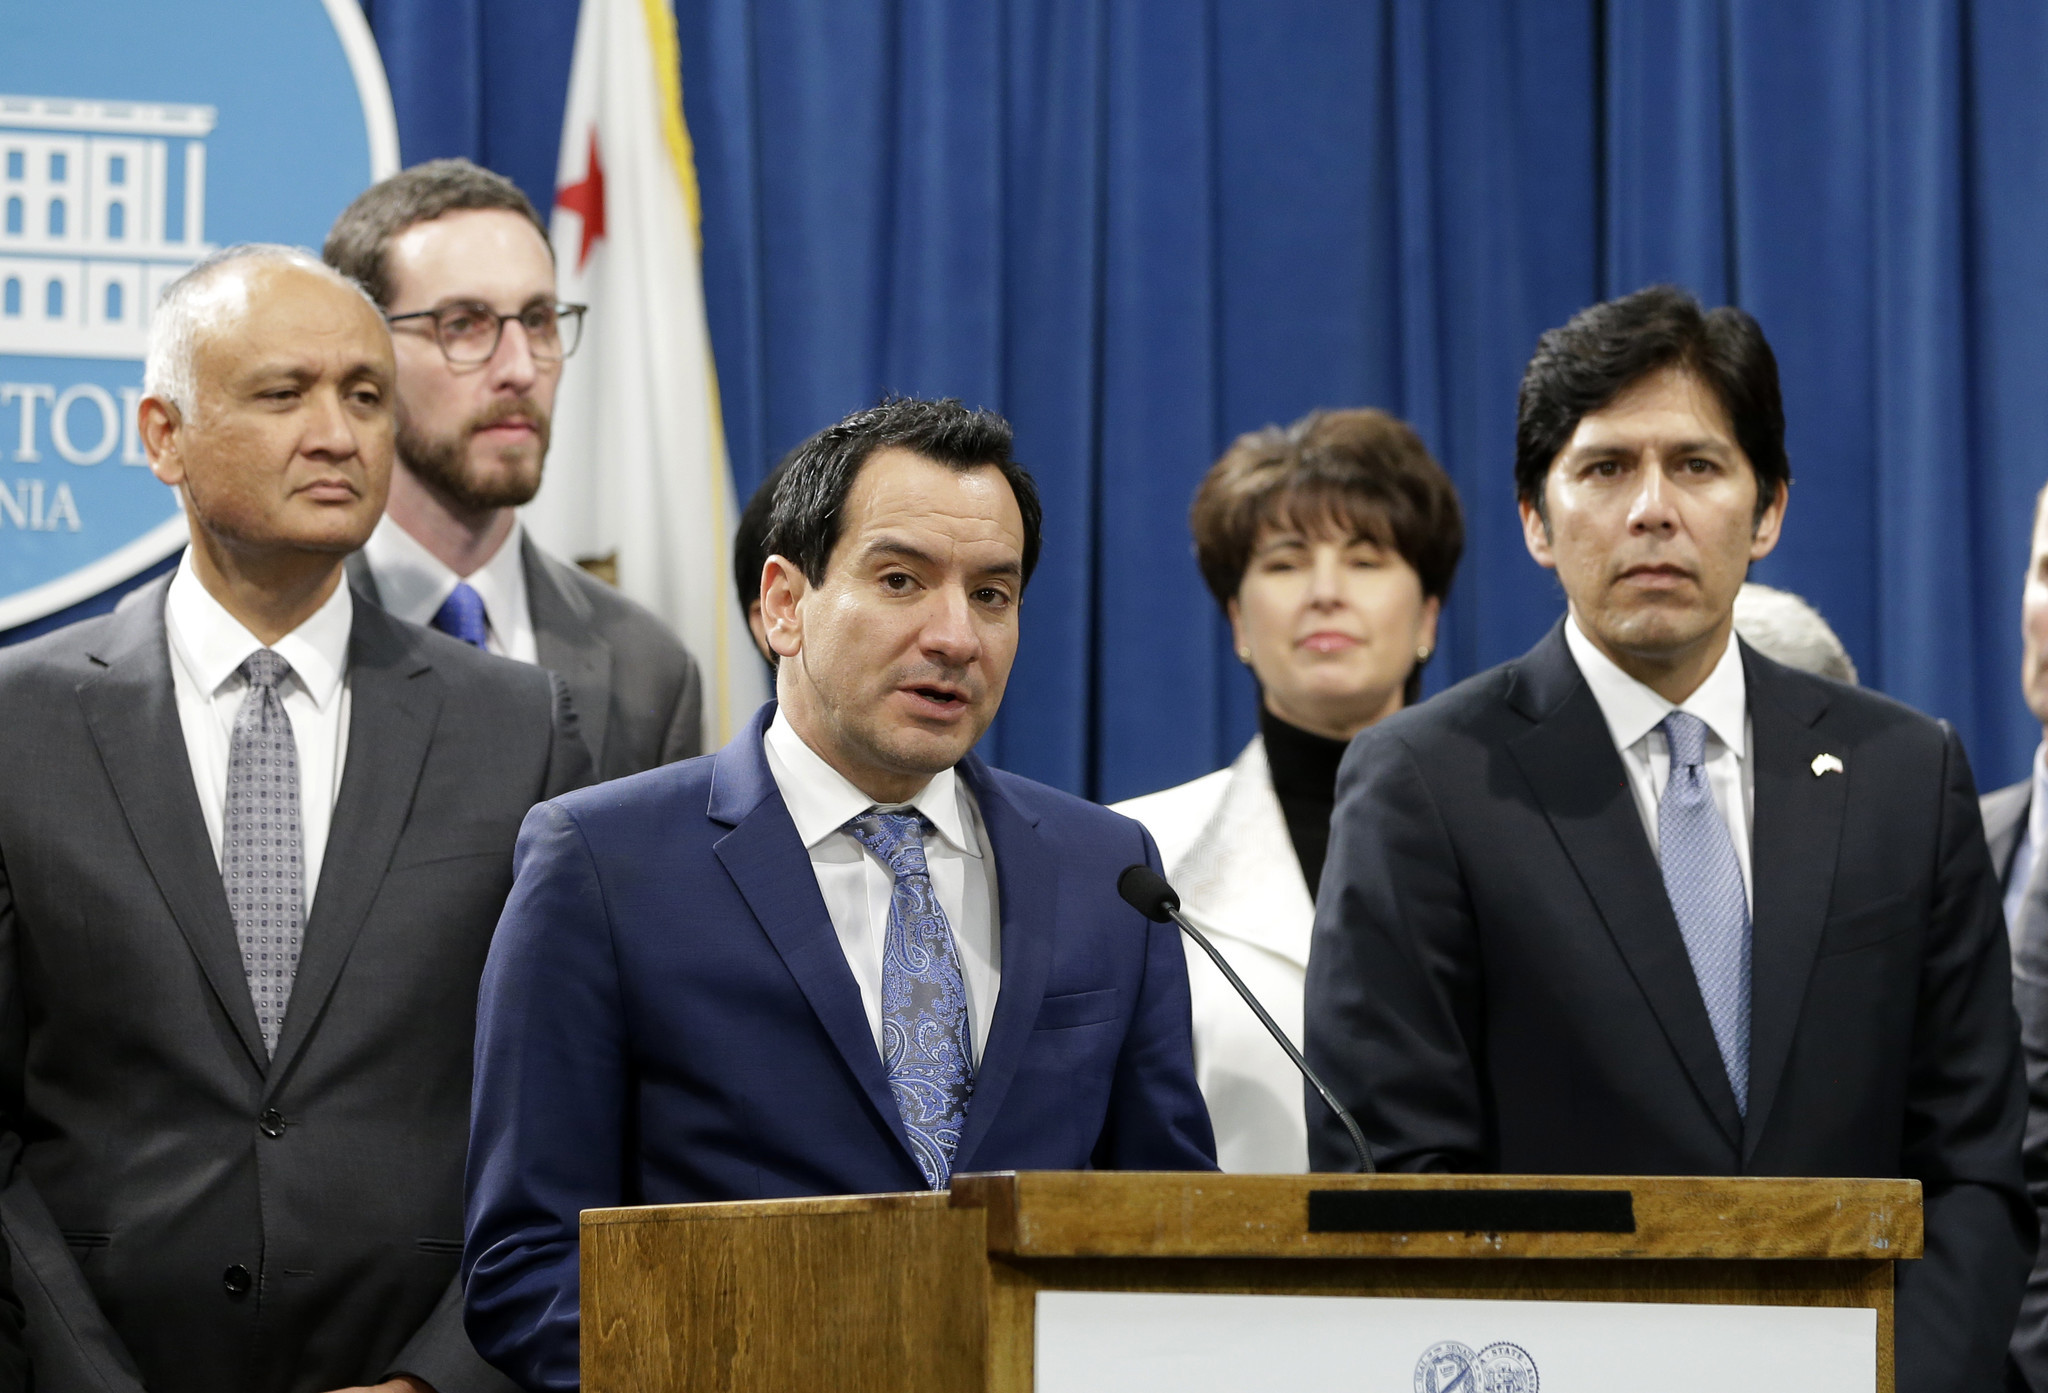 California Assembly Speaker Anthony Rendon, D-Paramount, third from left, flanked by Senate President Pro Tem Kevin de Len, D-Los Angeles, right, and other Democratic lawmakers, discusses a pair of proposed measures to protect immigrants, during a news conference in Sacramento.